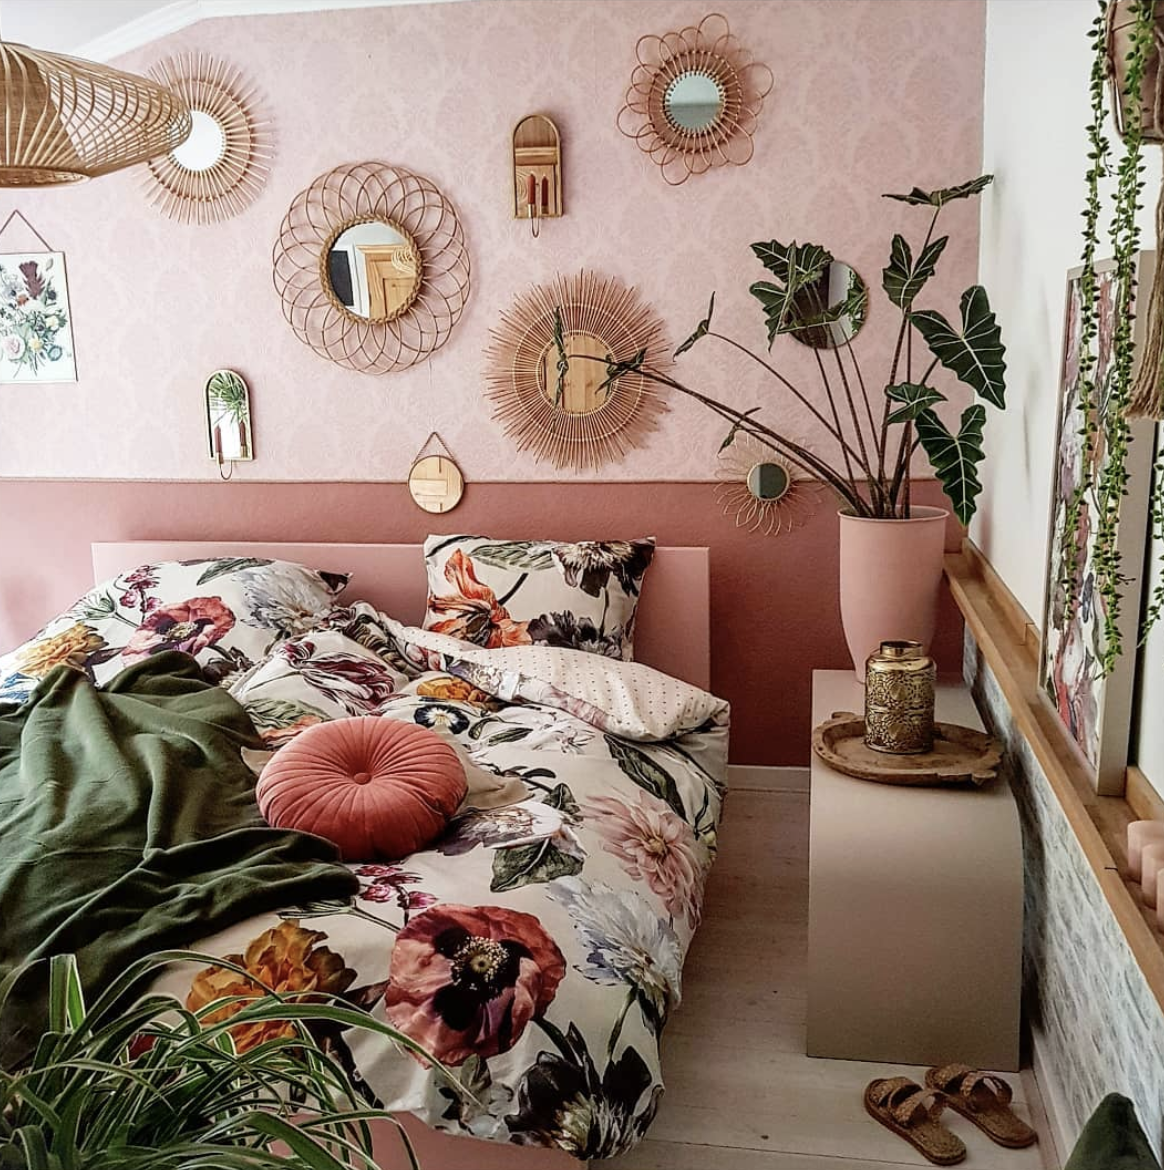 245 Instagram interieur inspiratie top 5